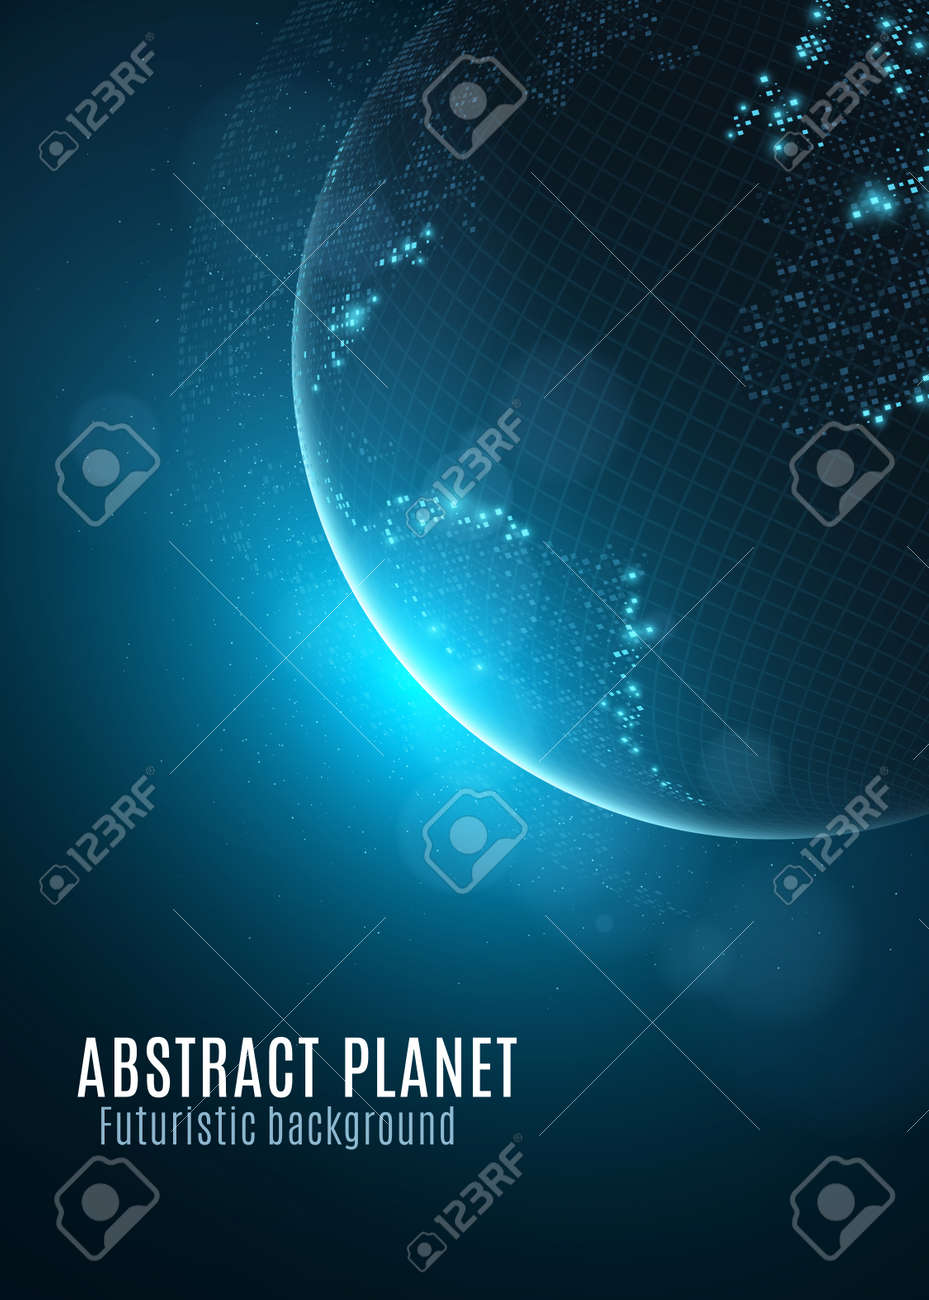 Square Earth Map.Abstract Planet Earth With Glowing Map Of Small Square Dots And